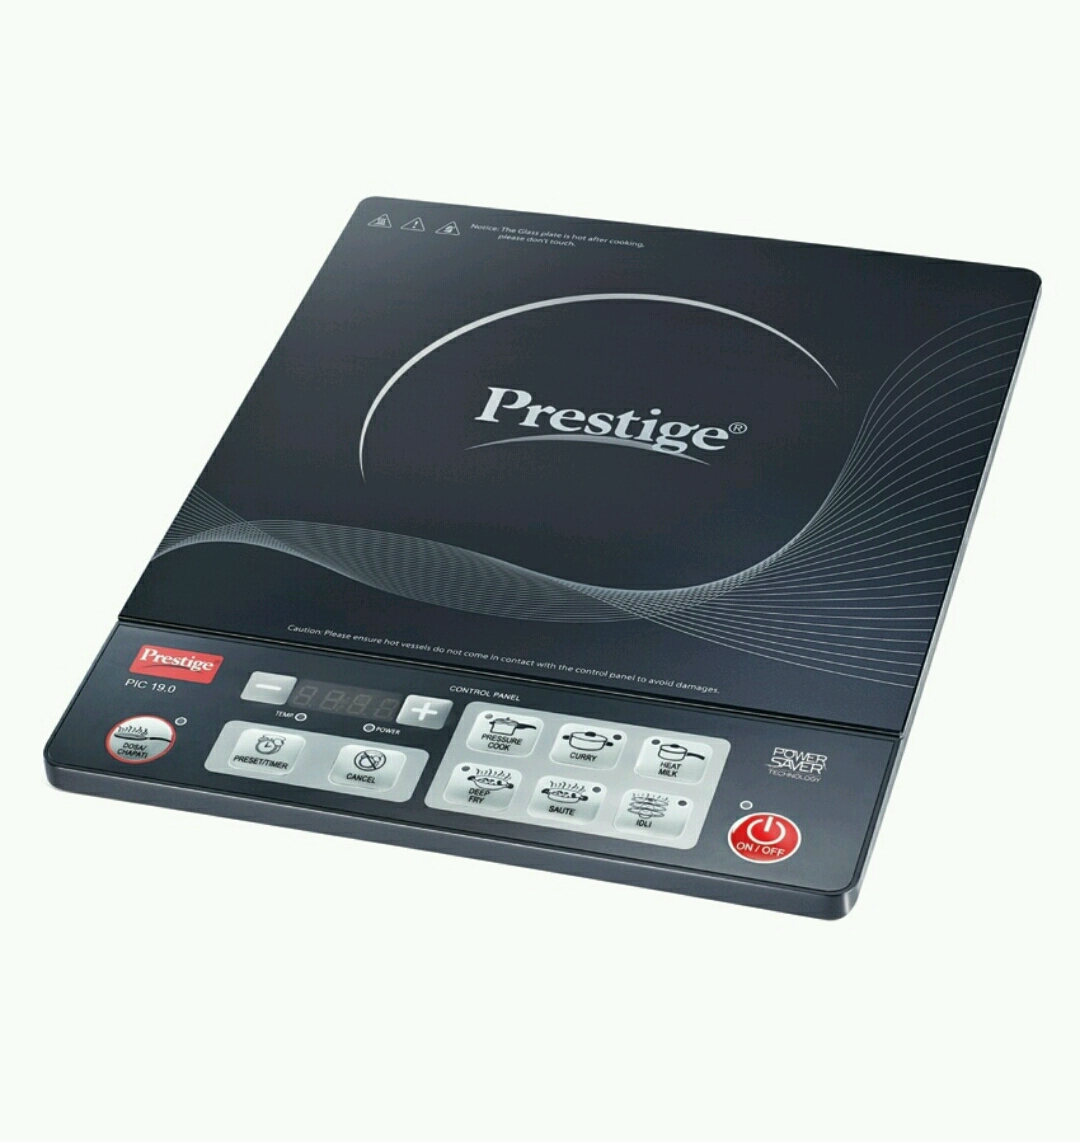 Induction Cooktops Reviews The King Of Wastage Prestige 19 Induction Cooktop